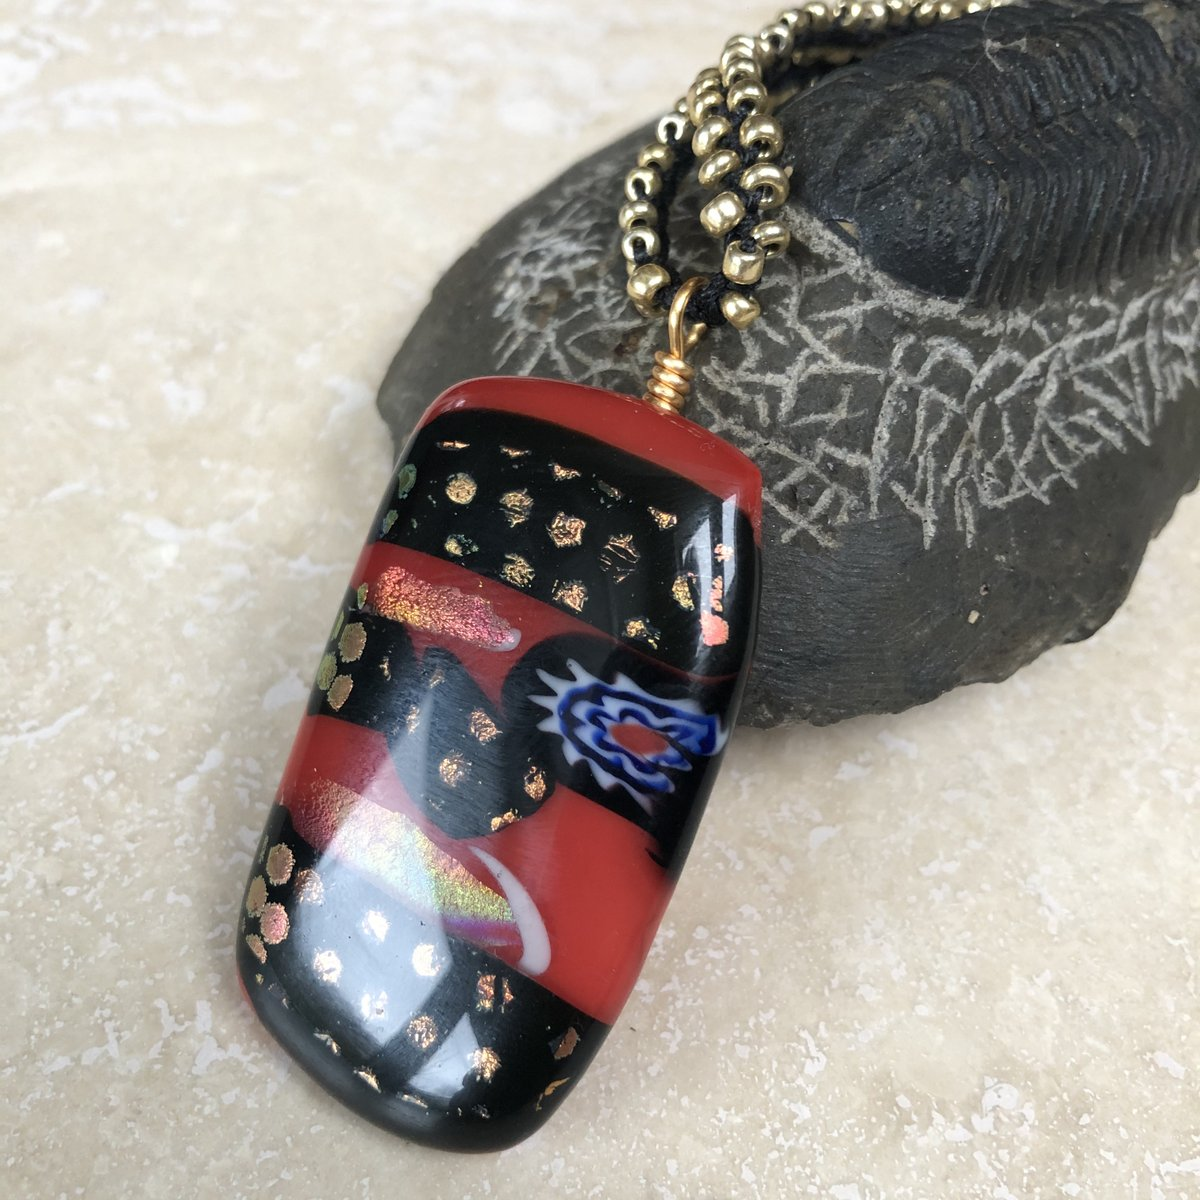 Excited to share the latest addition to my #etsy shop: Fused Dichroic Glass and Micro Macrame Pendant  #jewelry #necklace #red #black #unisexadults #glass #goldplateclasp #goldplatedchain #goldglassseedbeads